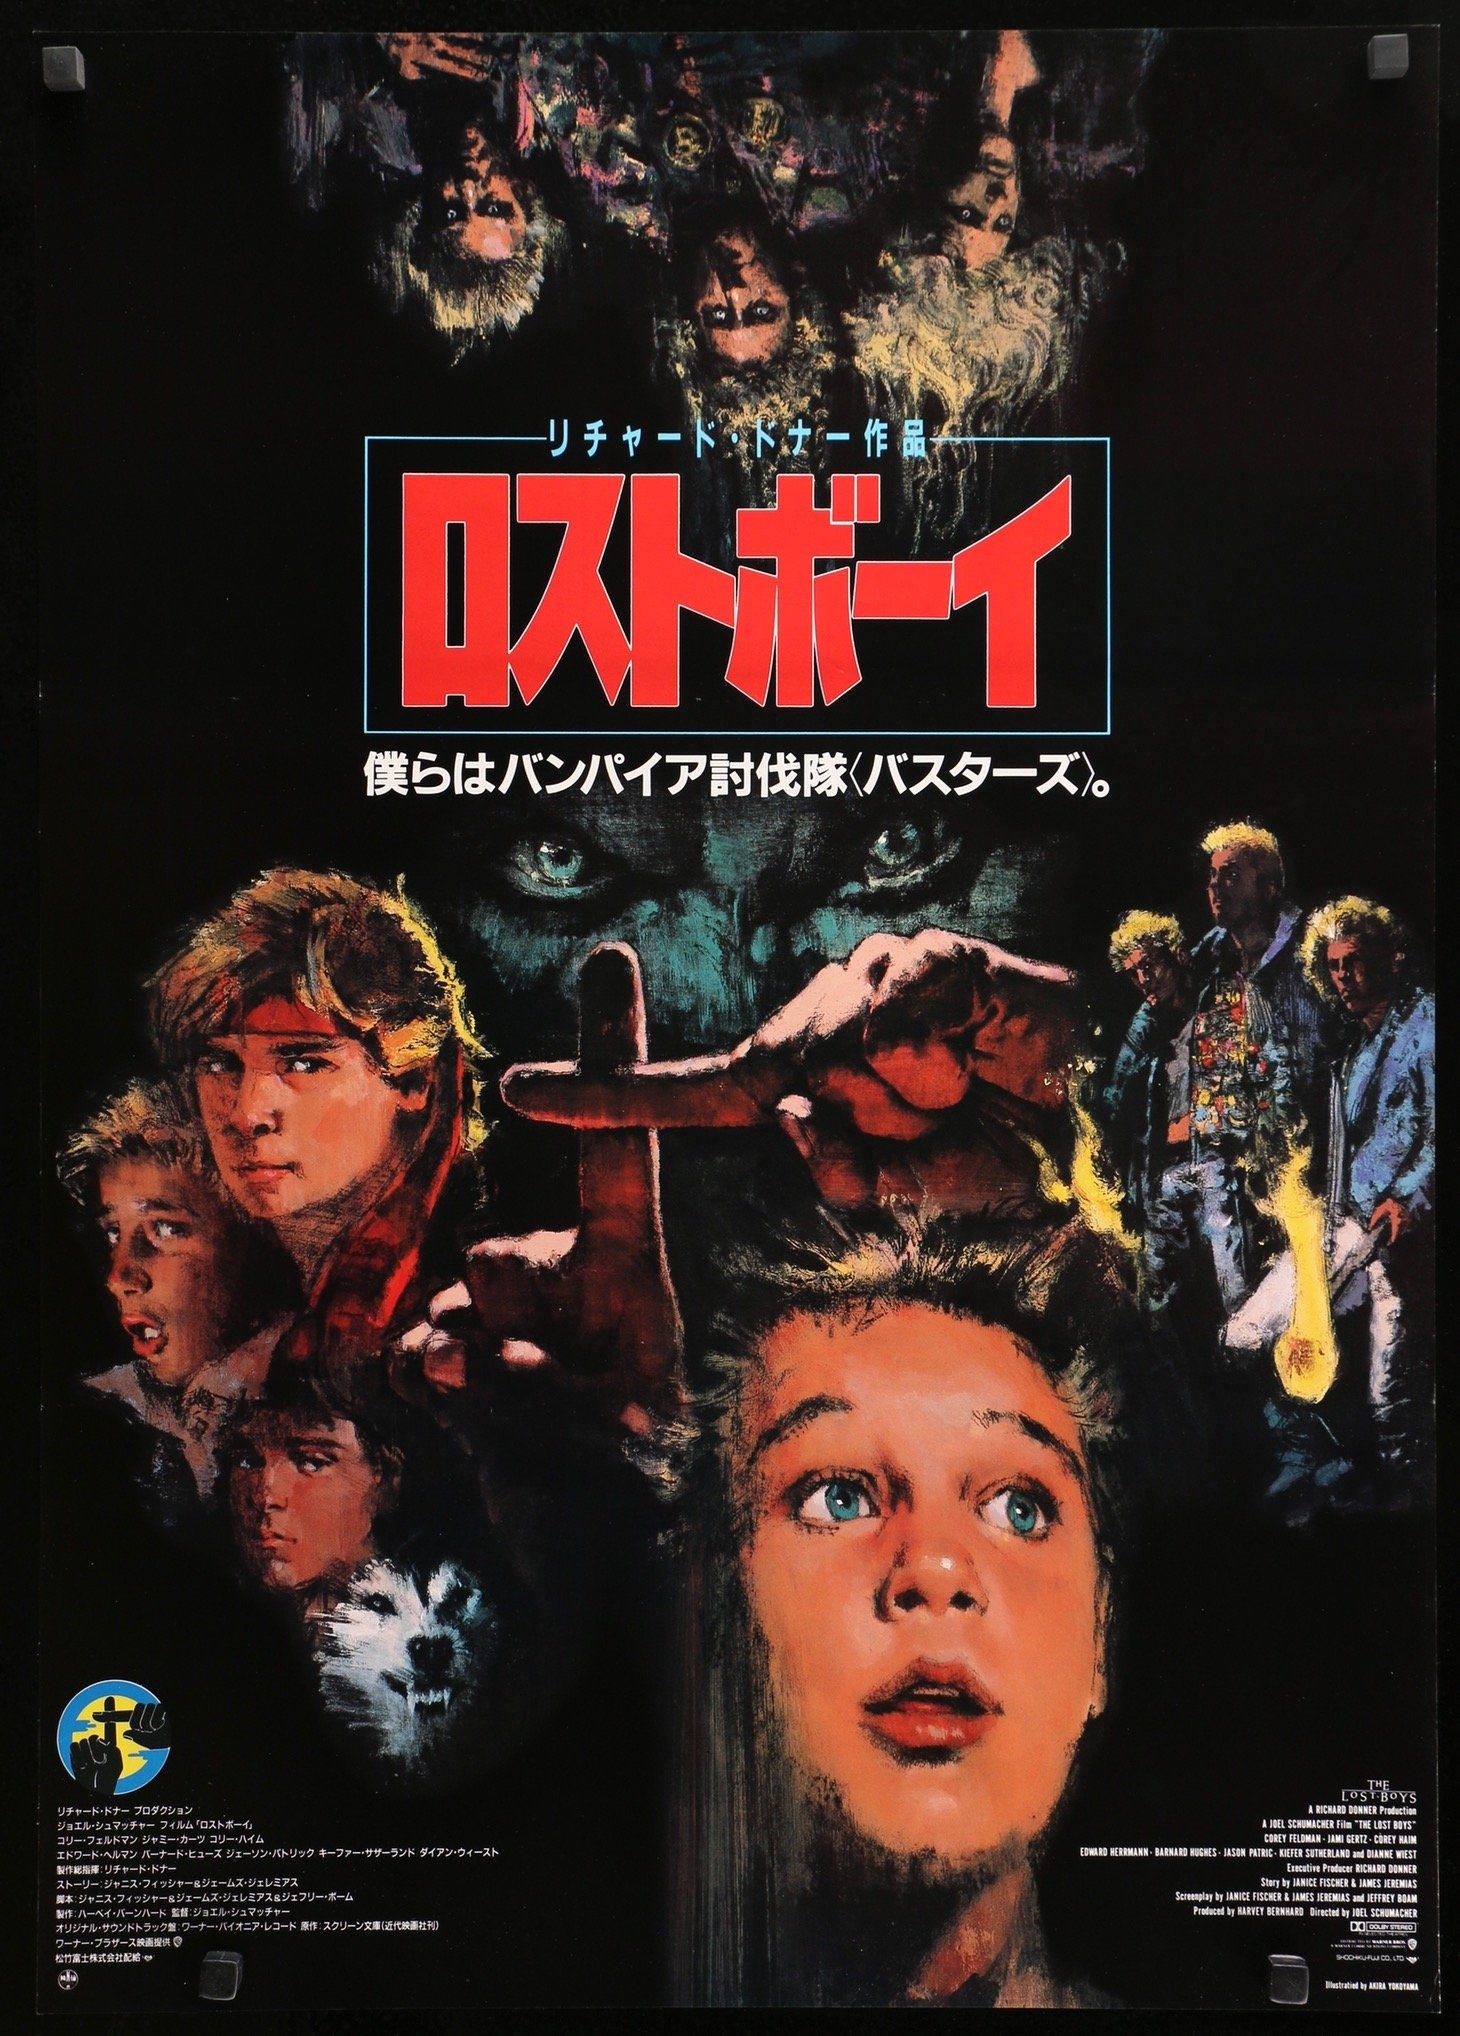 The Lost Boys Japanese poster